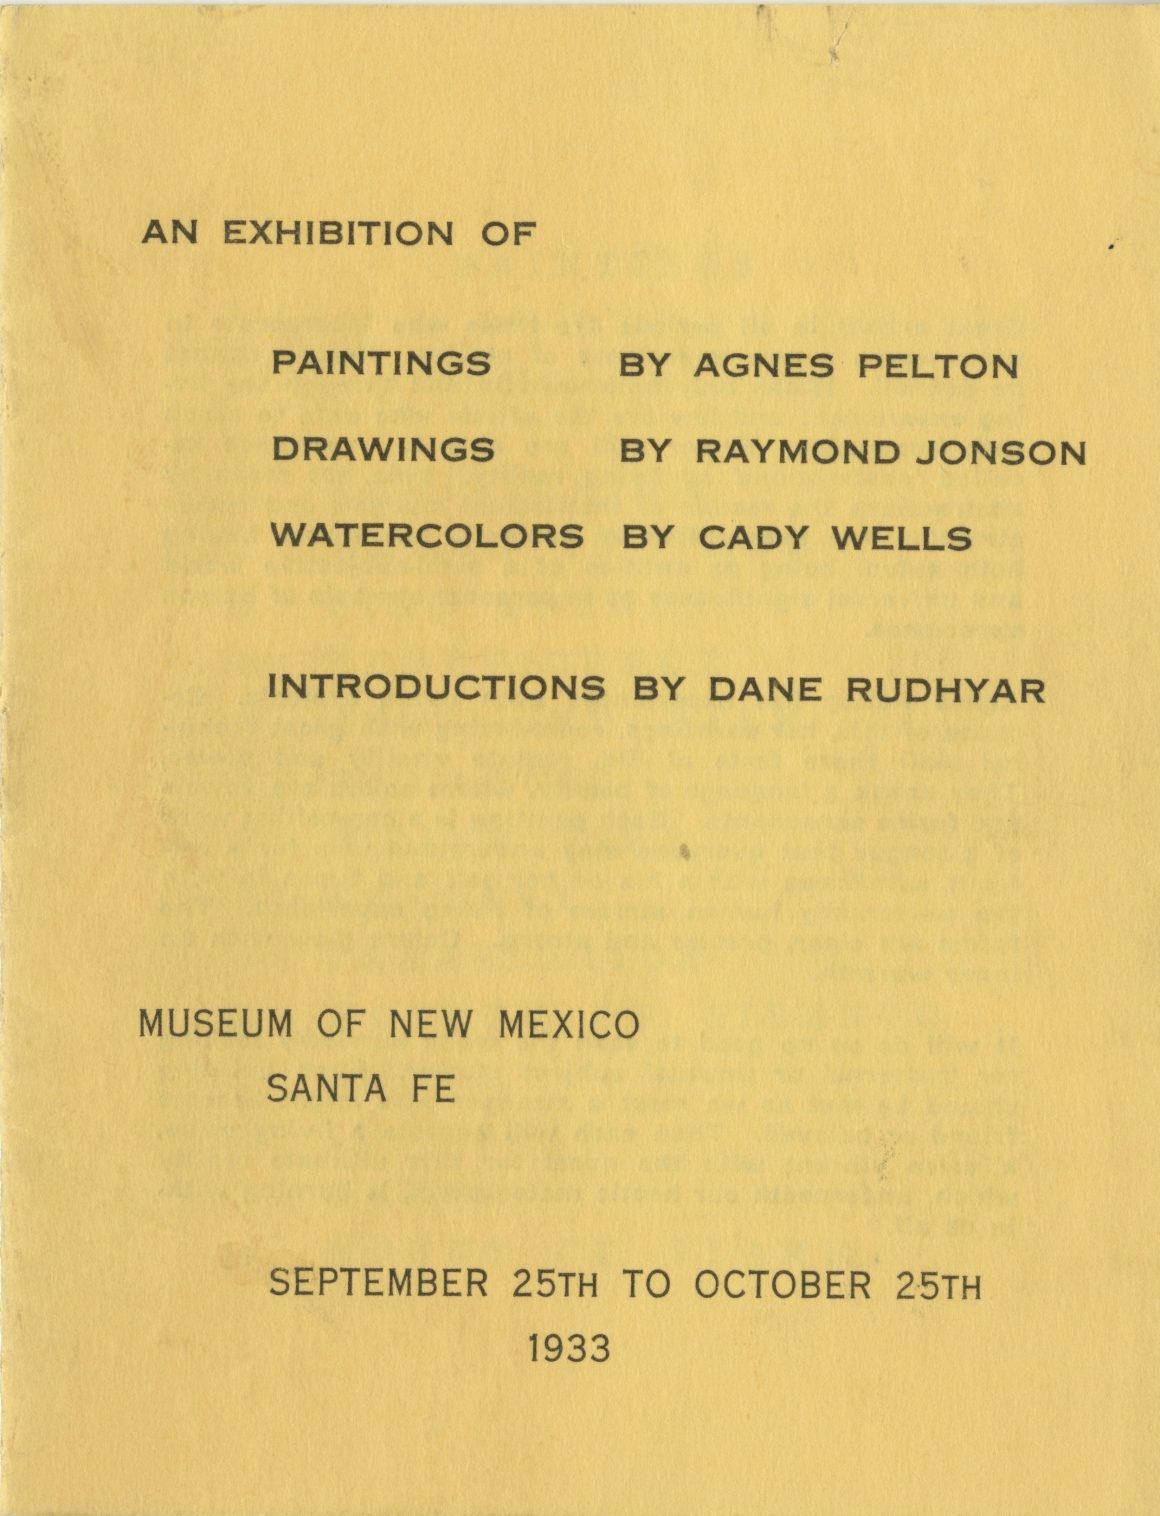 Brochure for an exhibition of paintings by Agnes Pelton, drawings by Raymond Jonson, and watercolors by Cady Wells at the Museum of New Mexico in Santa Fe from September 25th to October 25th, 1933.